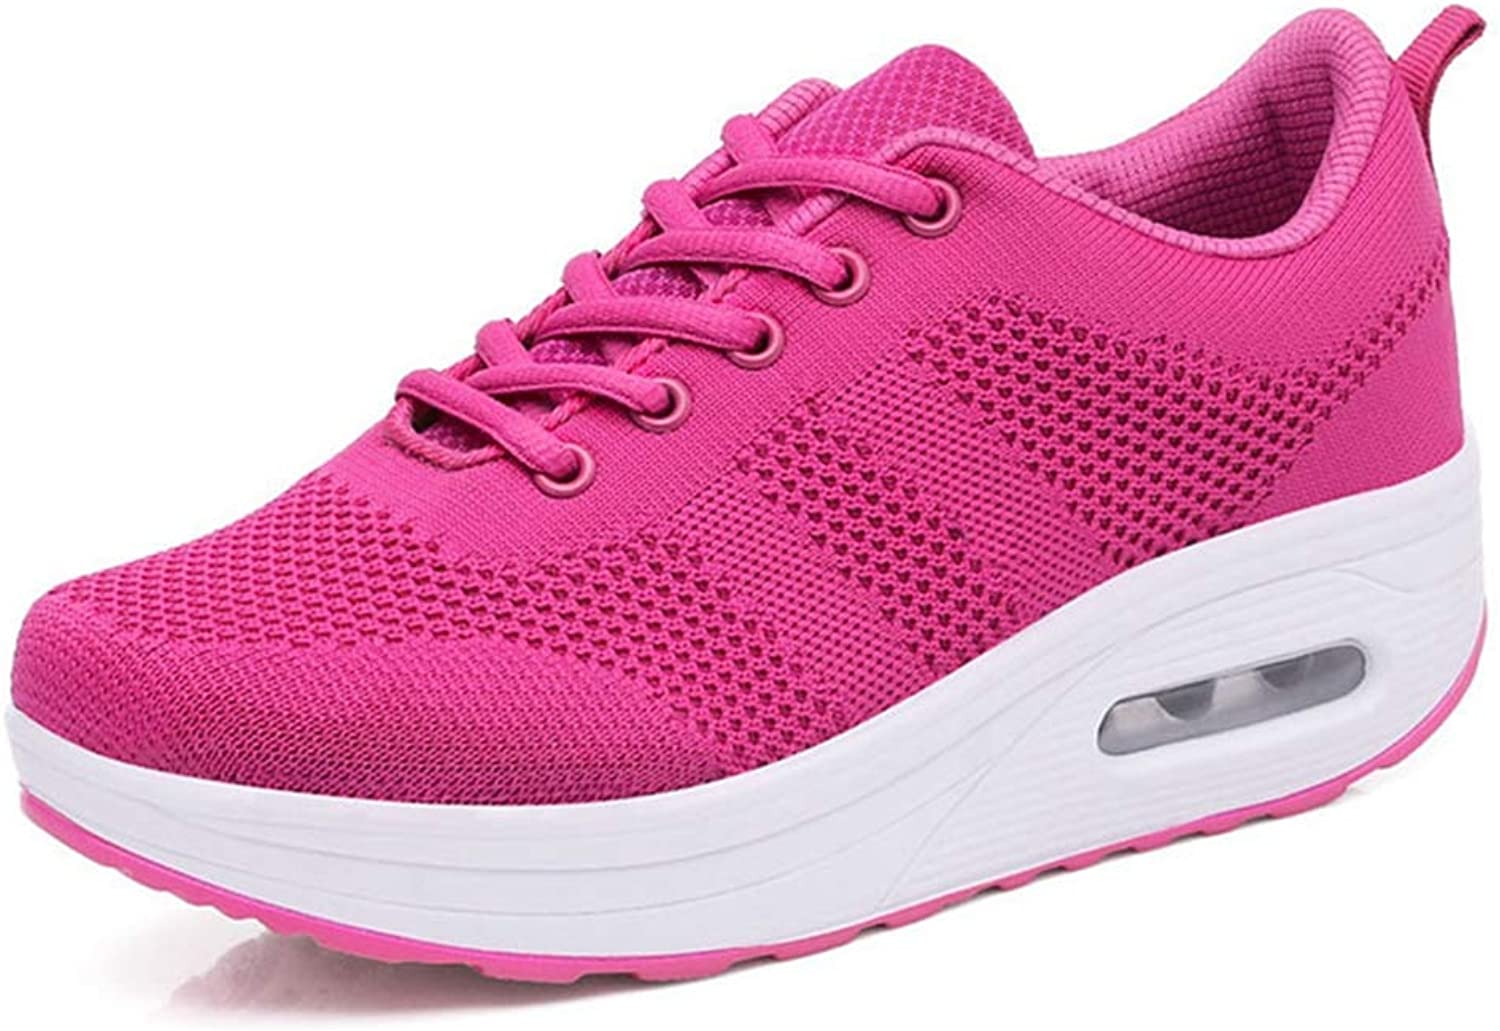 ASO-SLING Women's Lightweight Athletic Running shoes Breathable Air Mesh Upper Sport Fitness Gym Jogging Sneakers